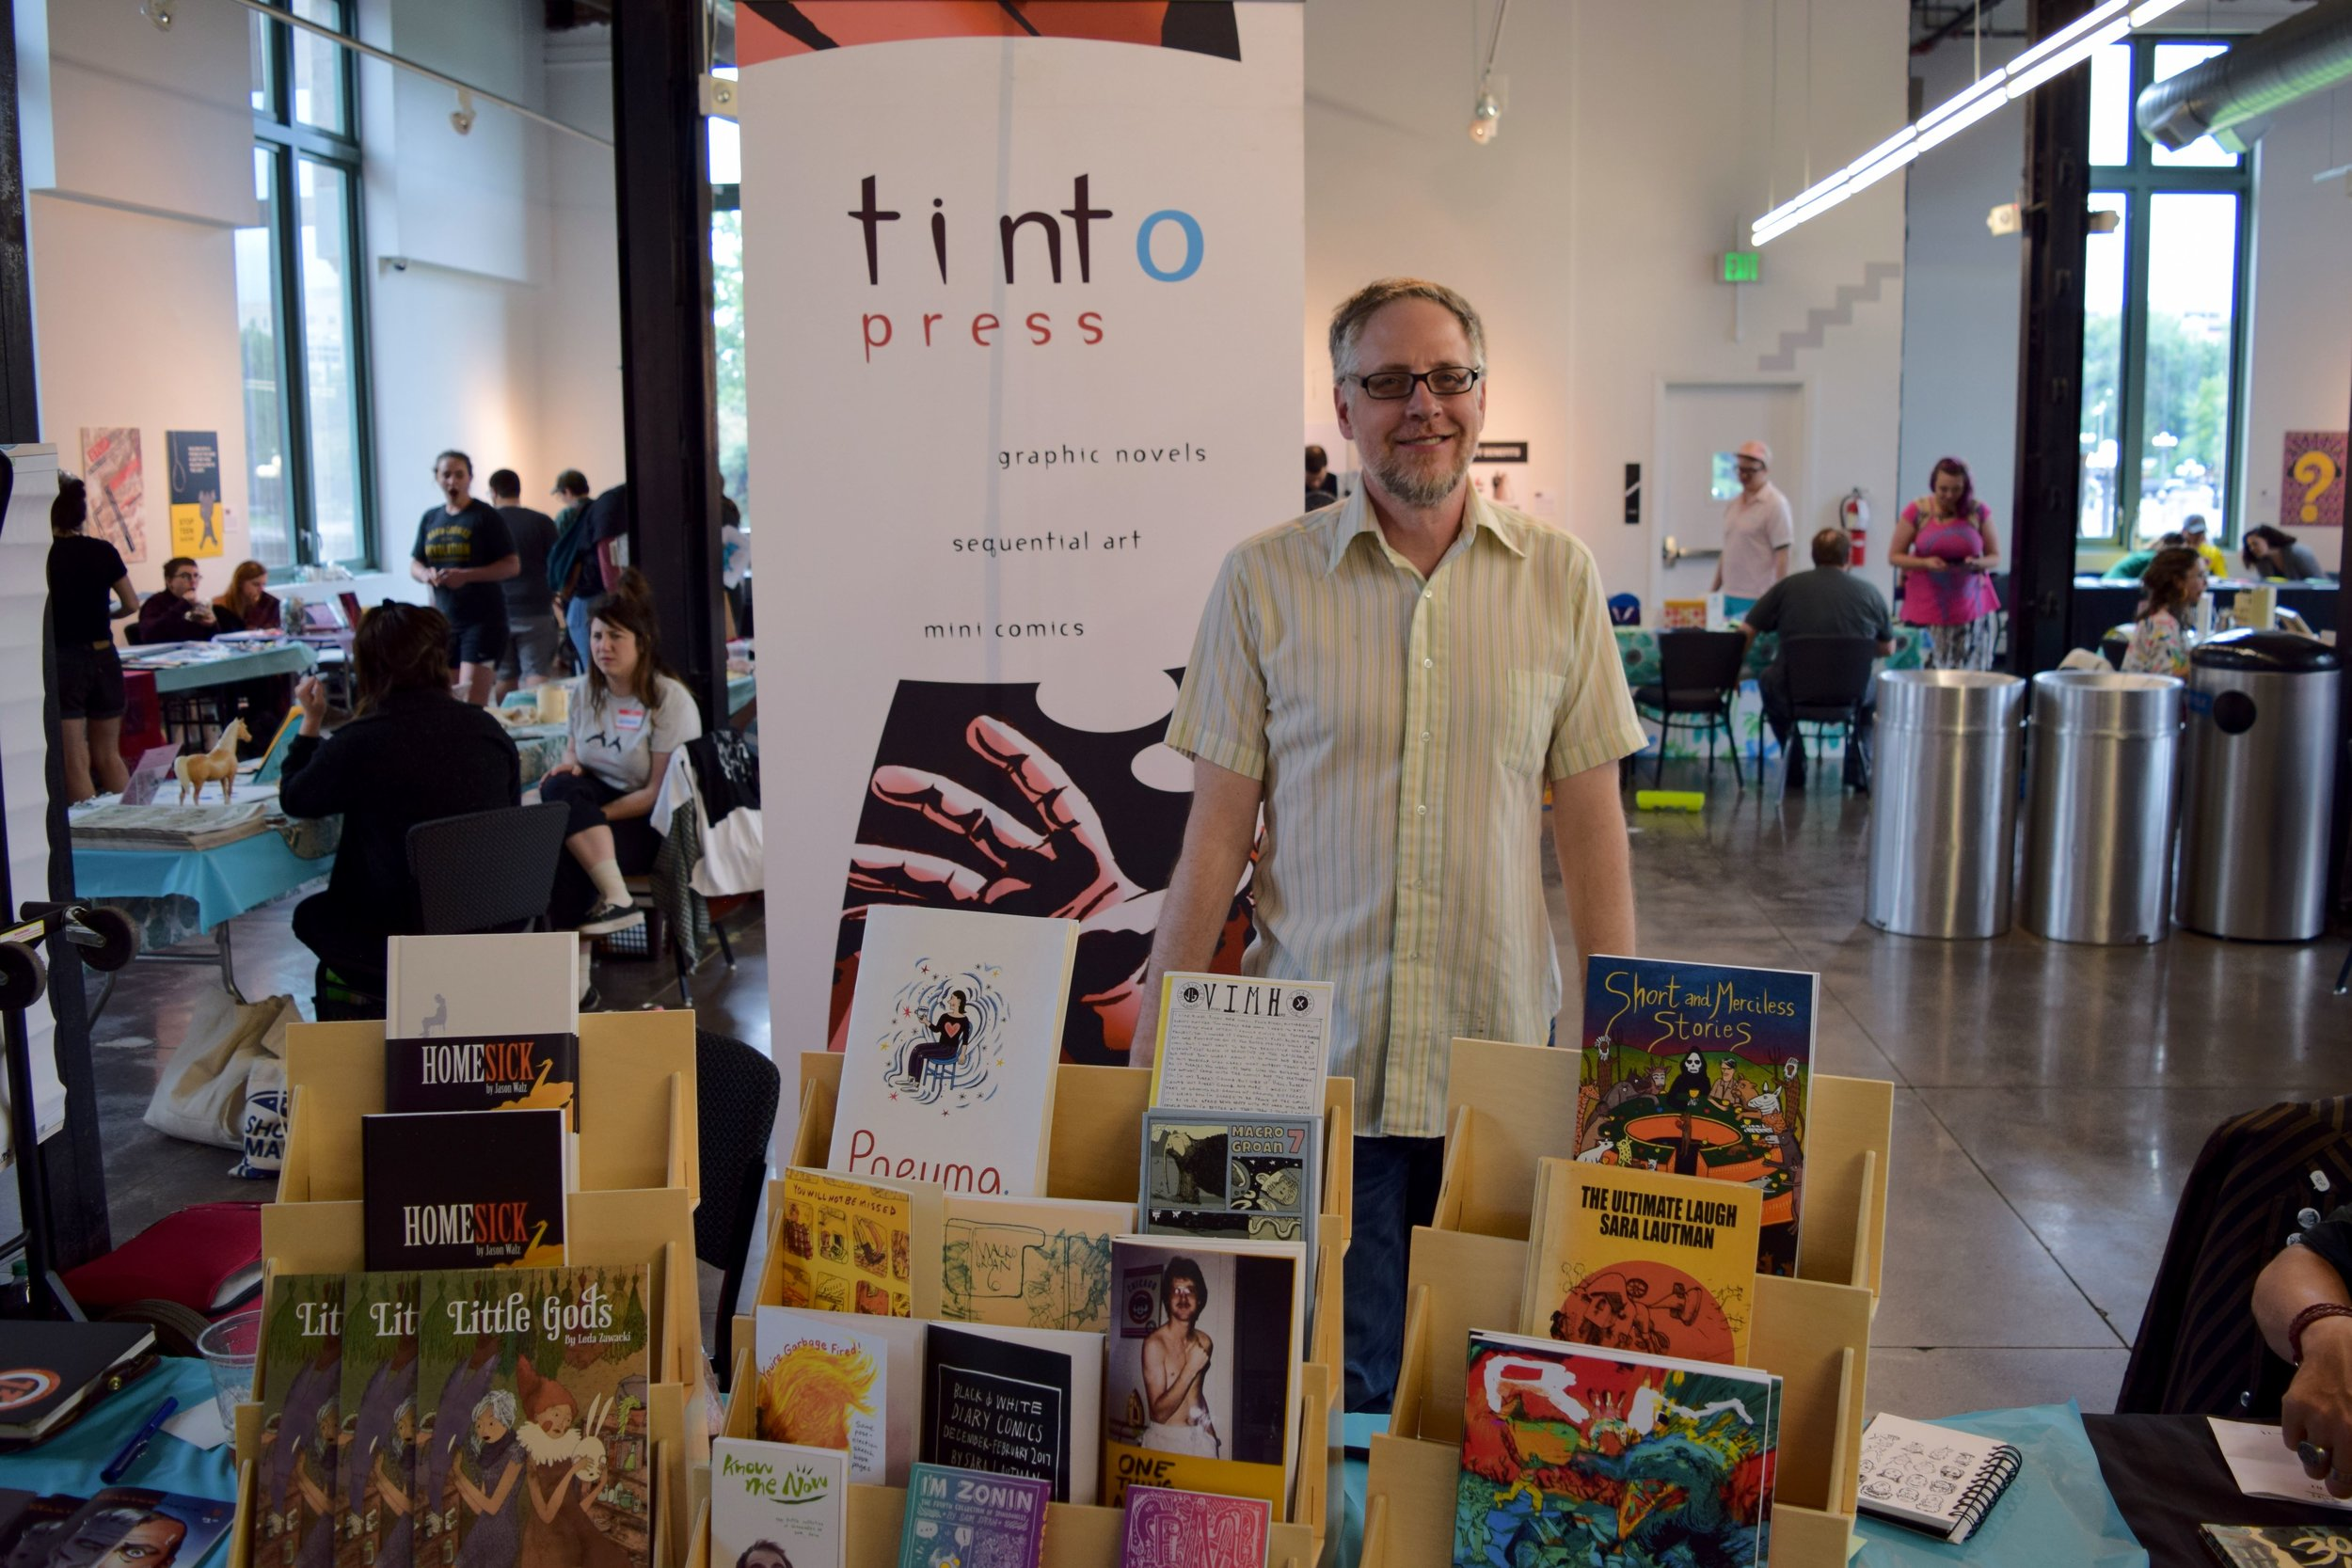 Ted Intorcio  of  Tinto Press  at  Denver Zine Fest 2018 .